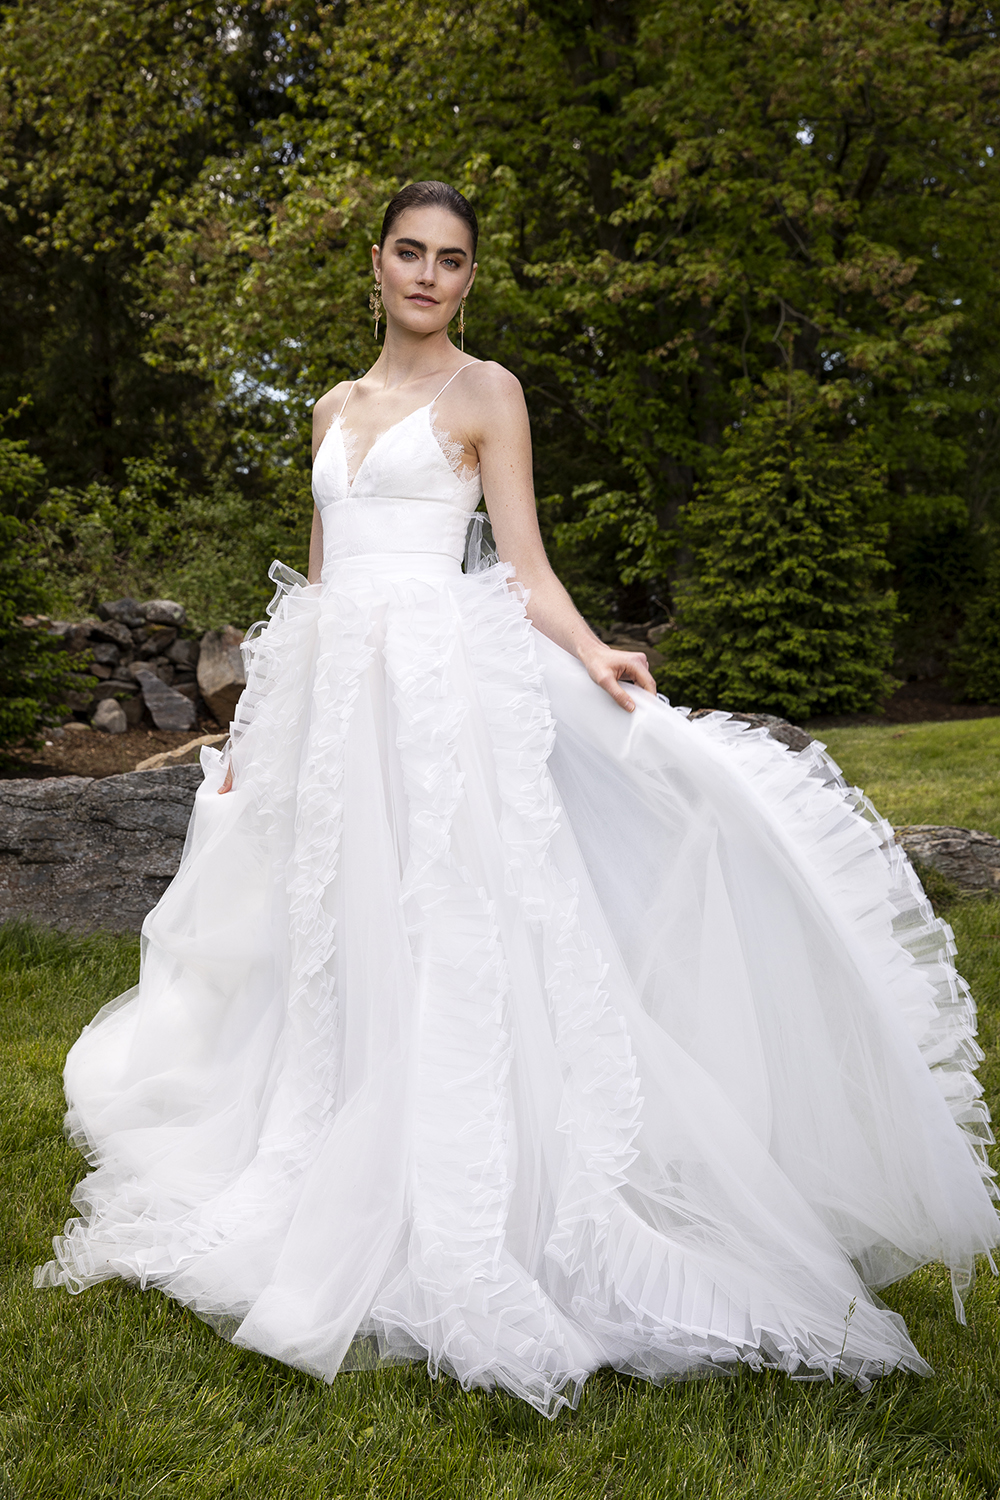 LACE SCALLOP EDGE BODICE WITH PLEATED ORGANZA AND TULLE SKIRT